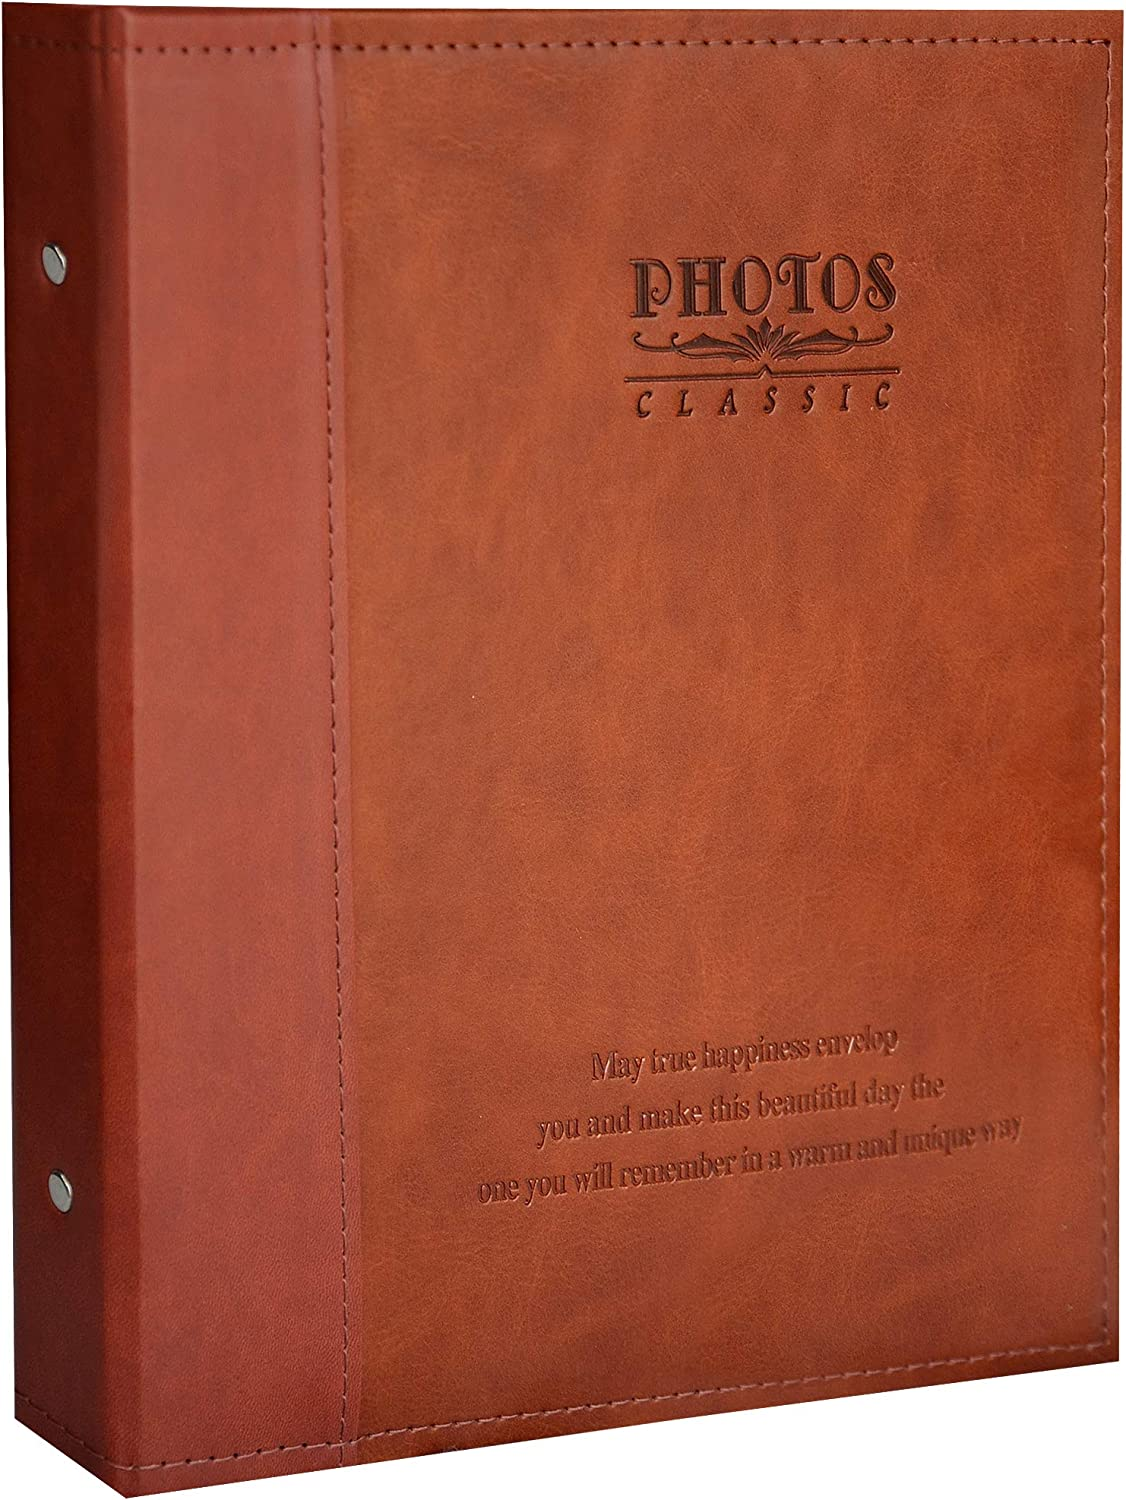 Zoview Leather Photo Album Holds 3X5, 4X6, 5X7, 6X8, 8X10 Photos, Dust-Free, Air-Free, and Waterproof, Hand Made DIY Albums (Red Brown, Medium)